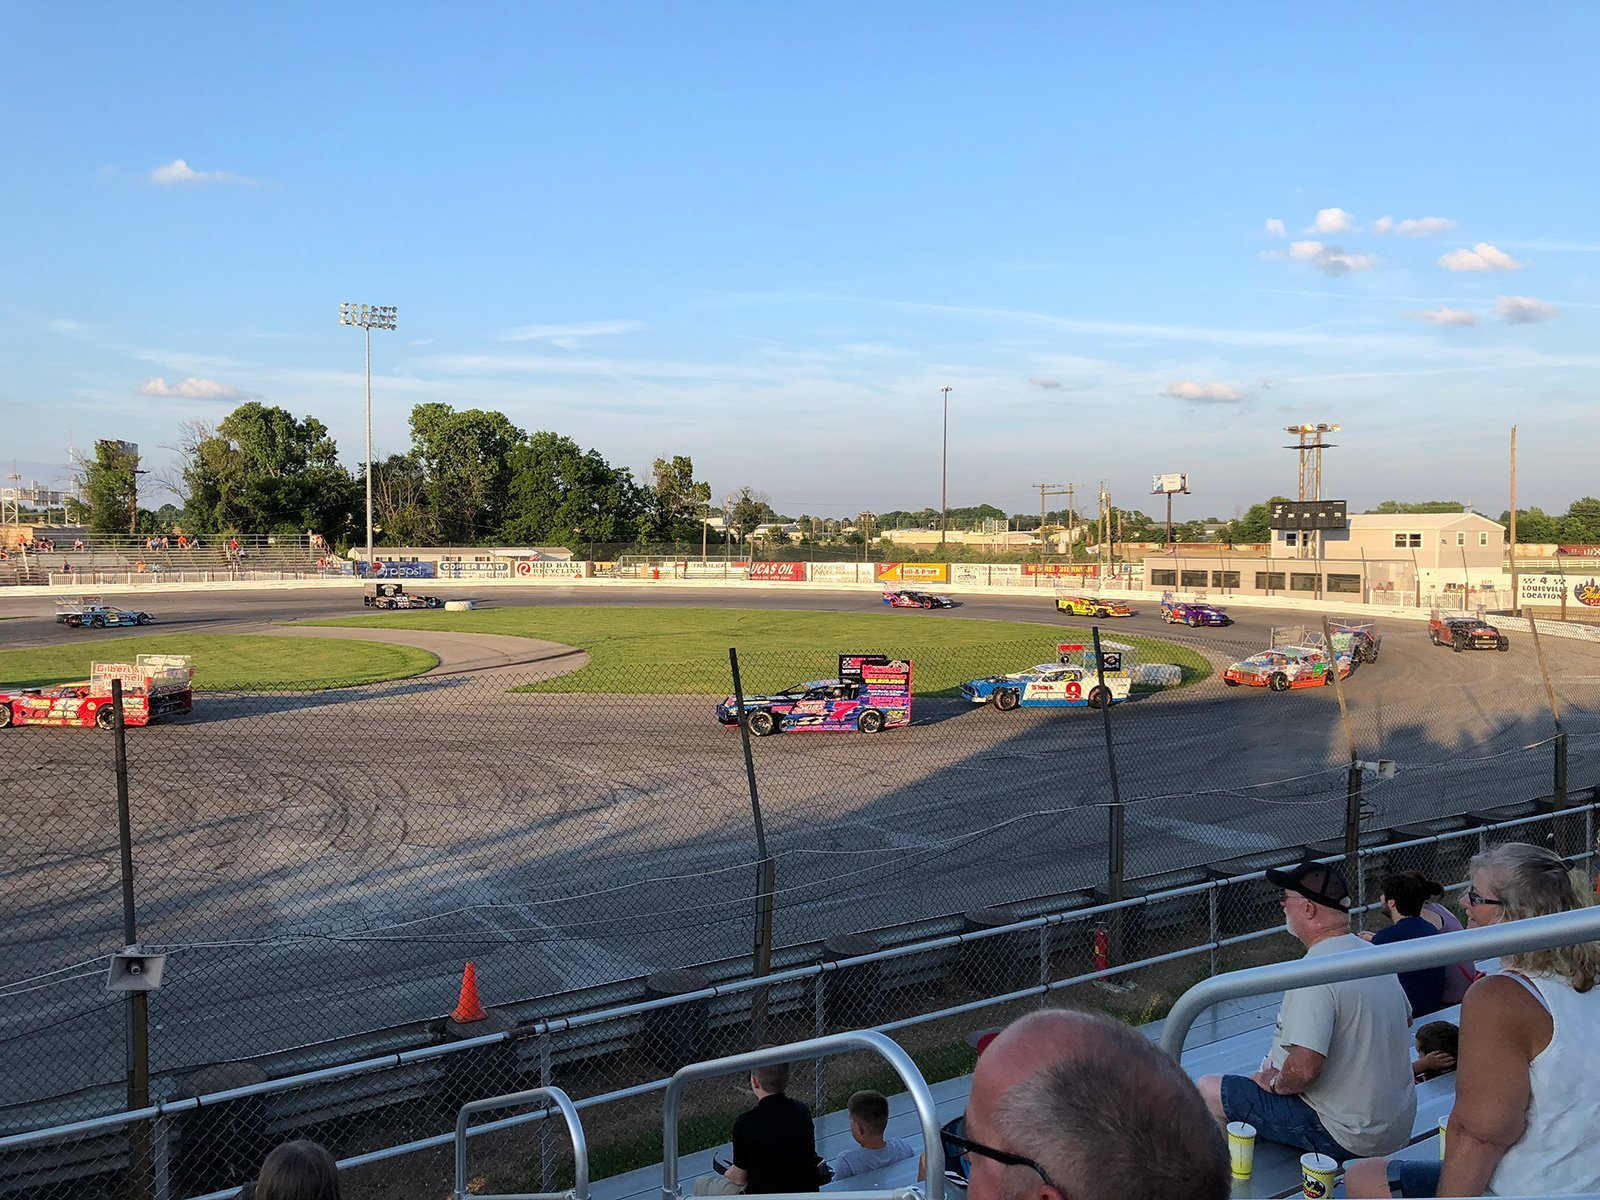 Sportsdrome Speedway in Clarksville, IN by Jets Like Taxis